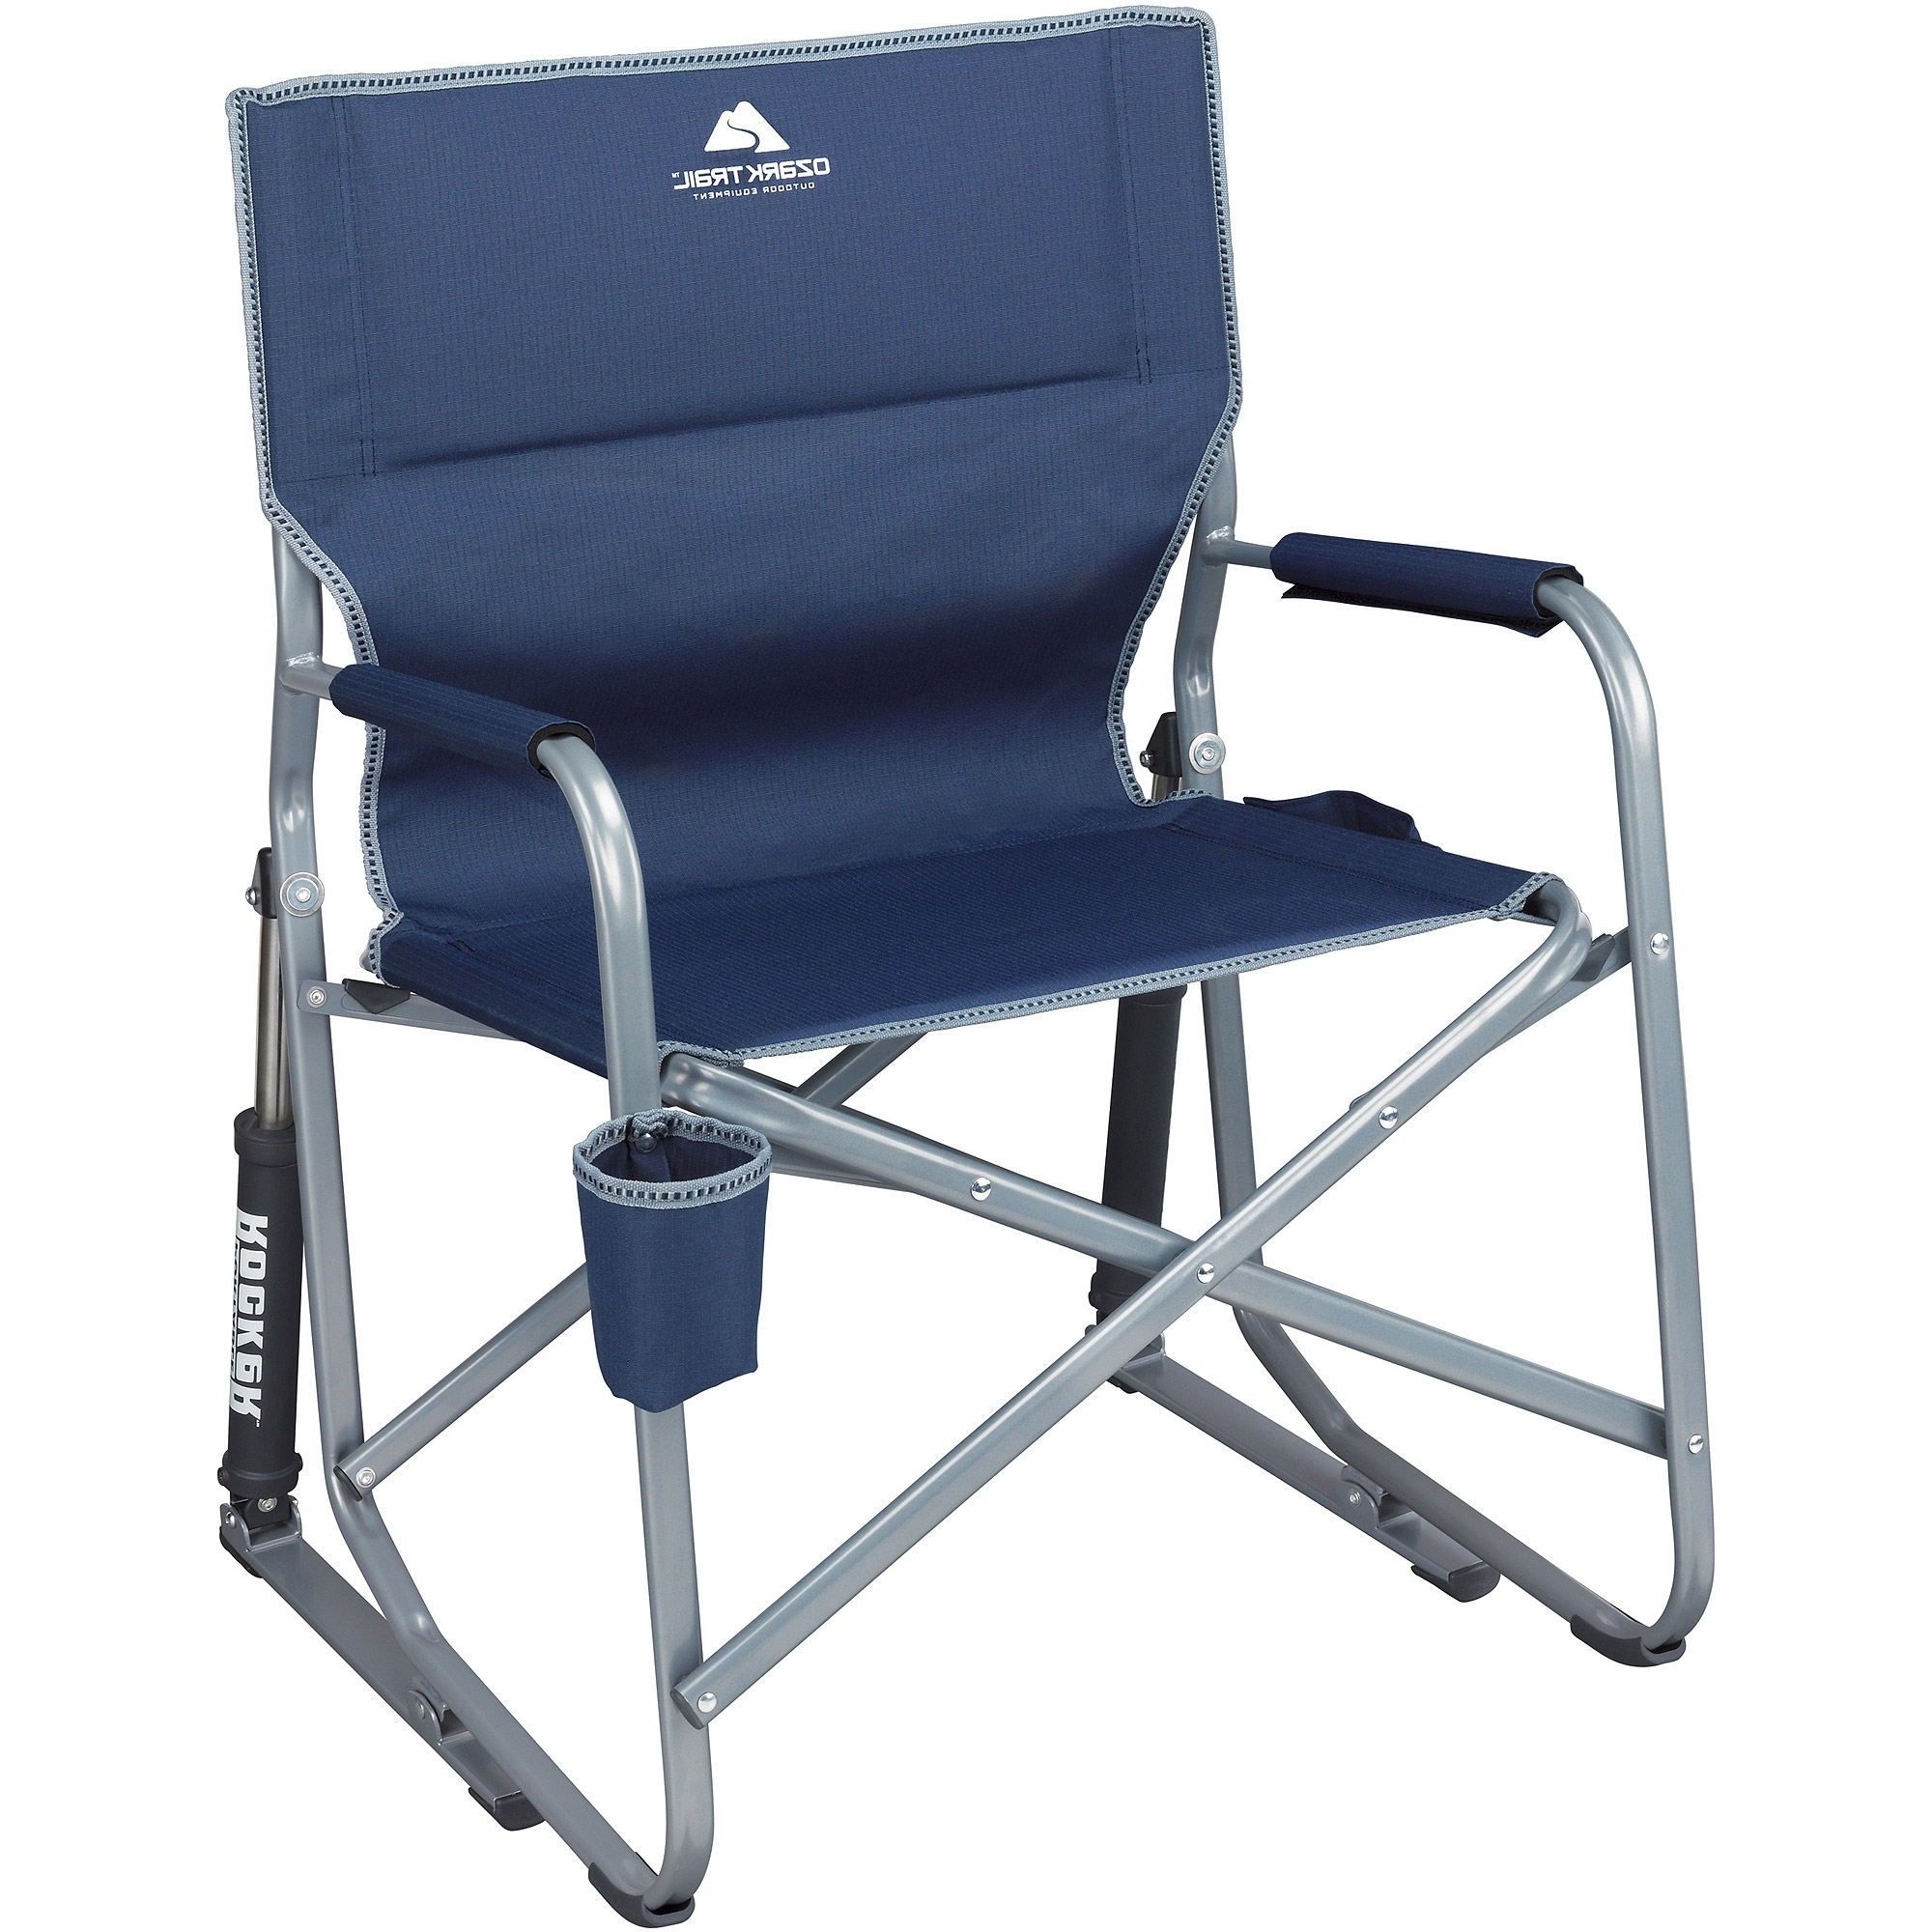 Most Up To Date Ozark Trail Portable Rocking Chair – Walmart With Regard To Folding Rocking Chairs (View 14 of 20)